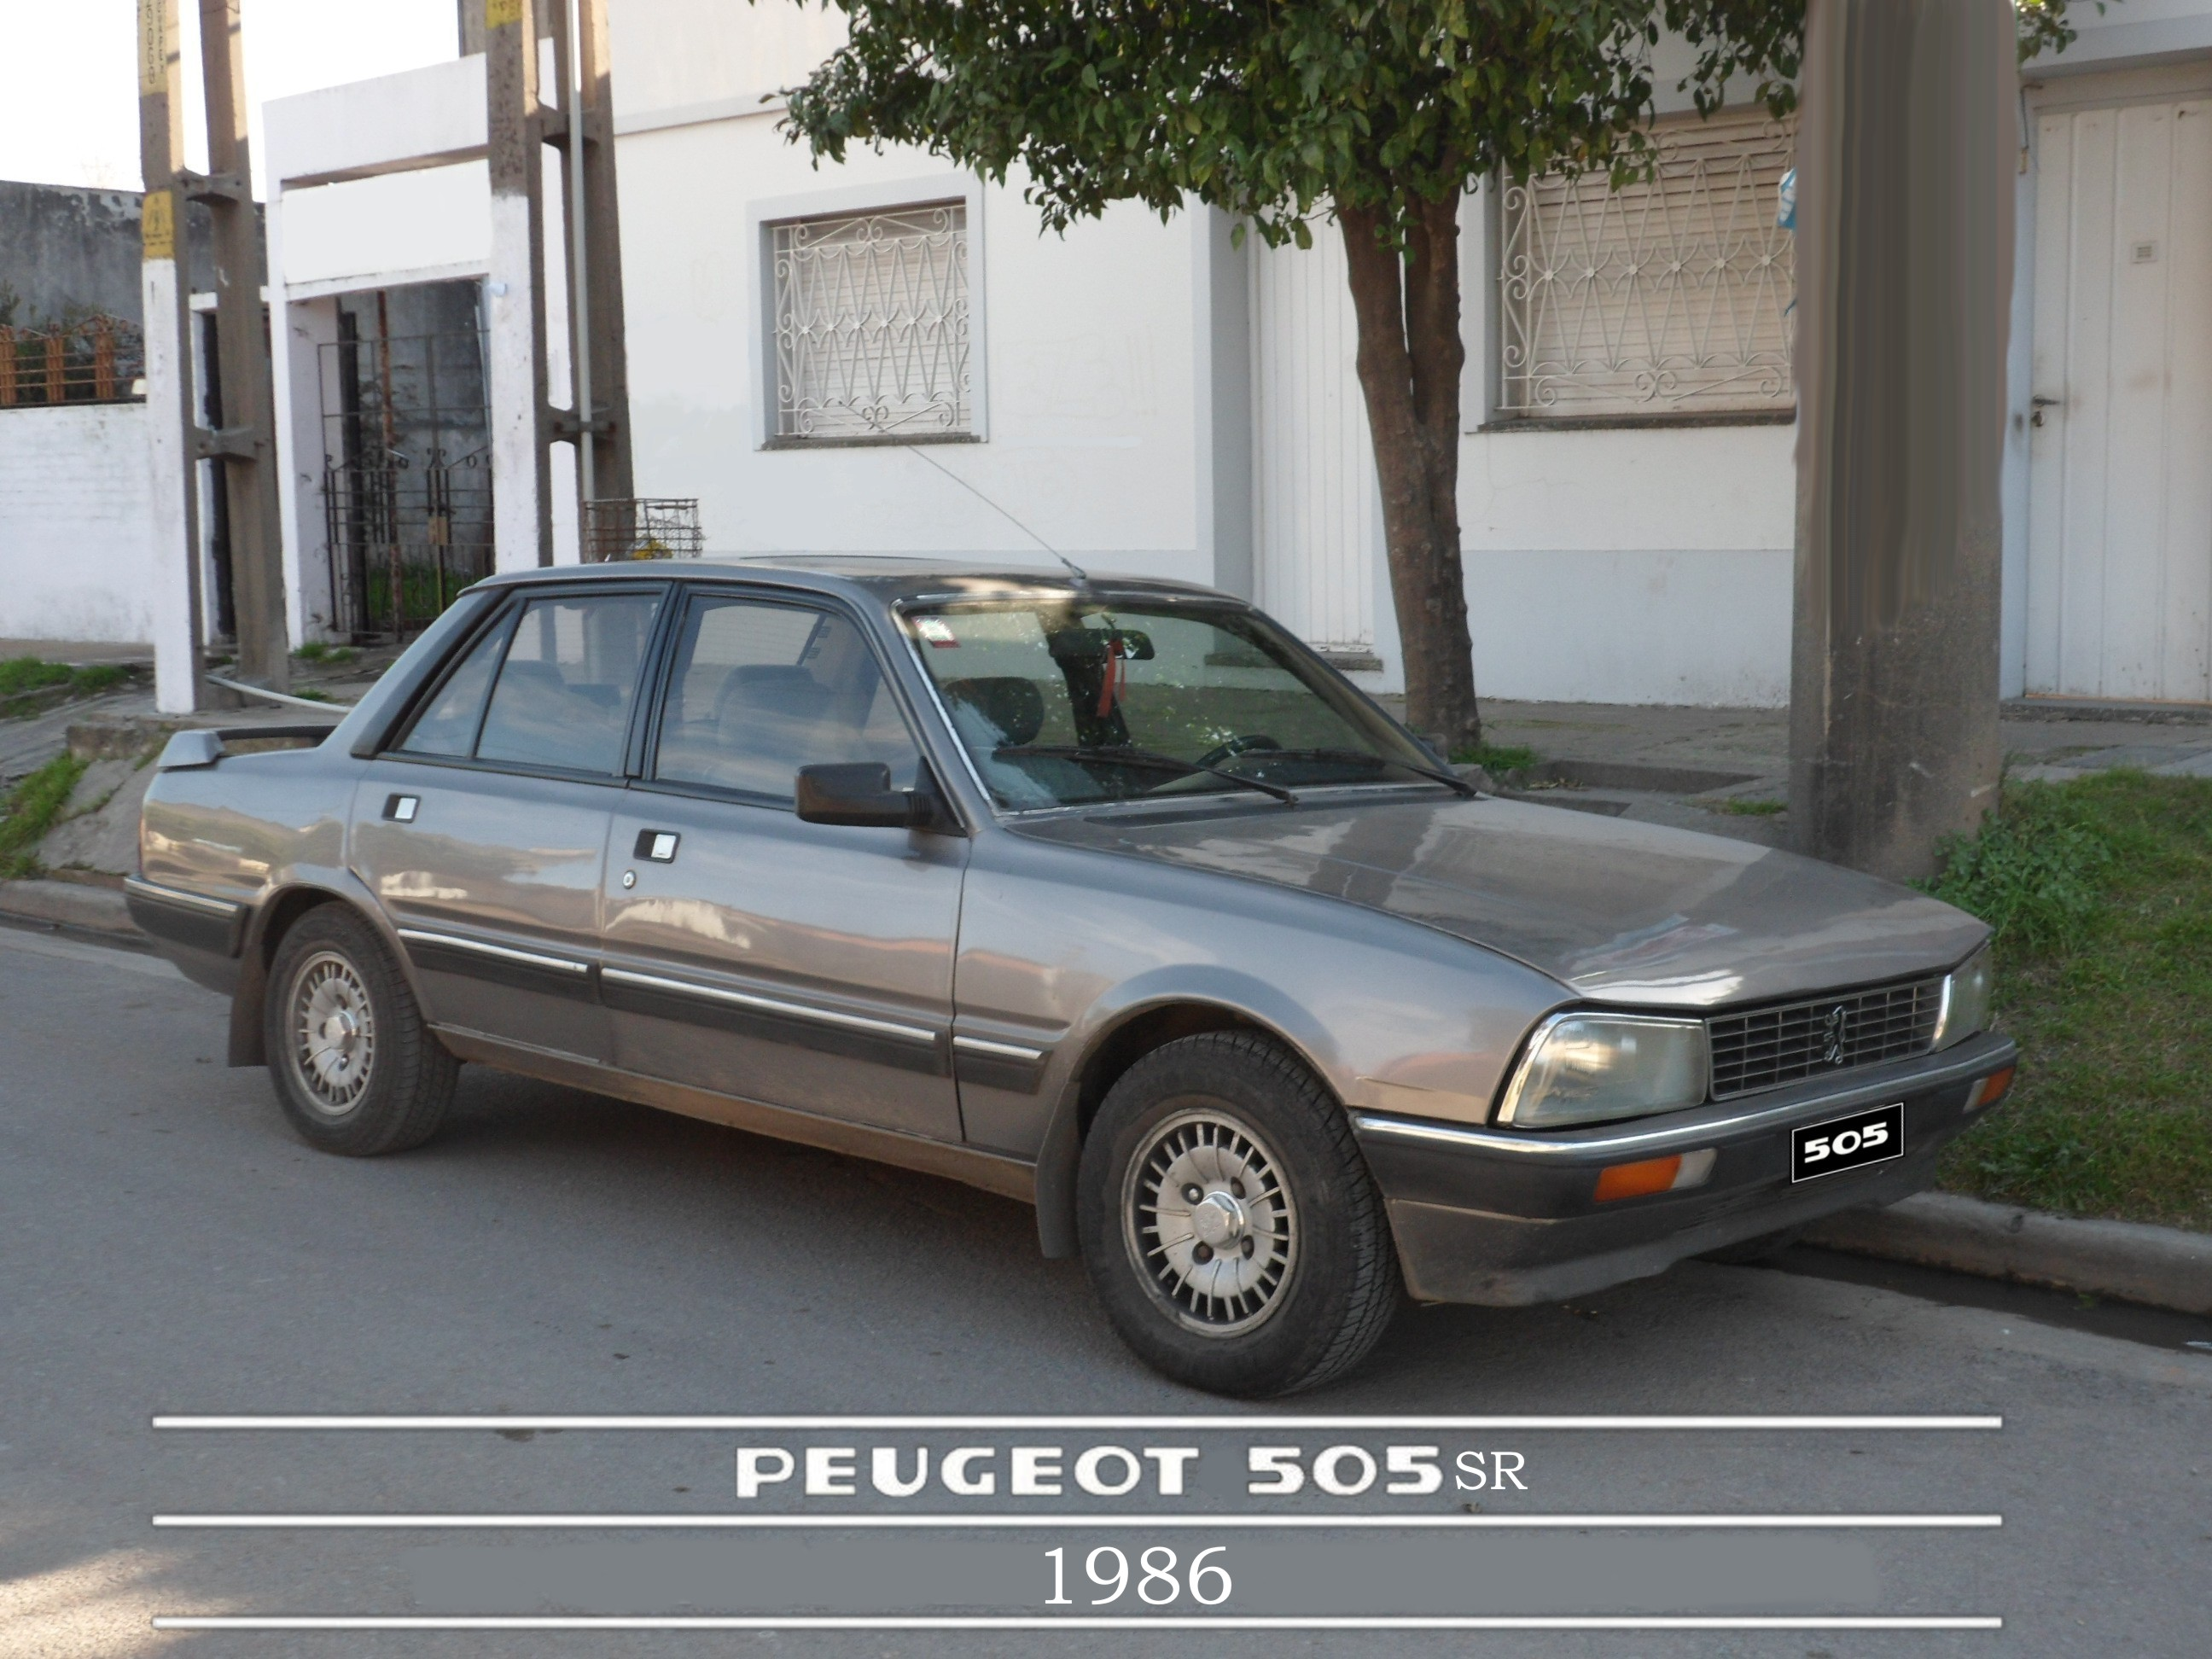 Pictures of peugeot 505 #3